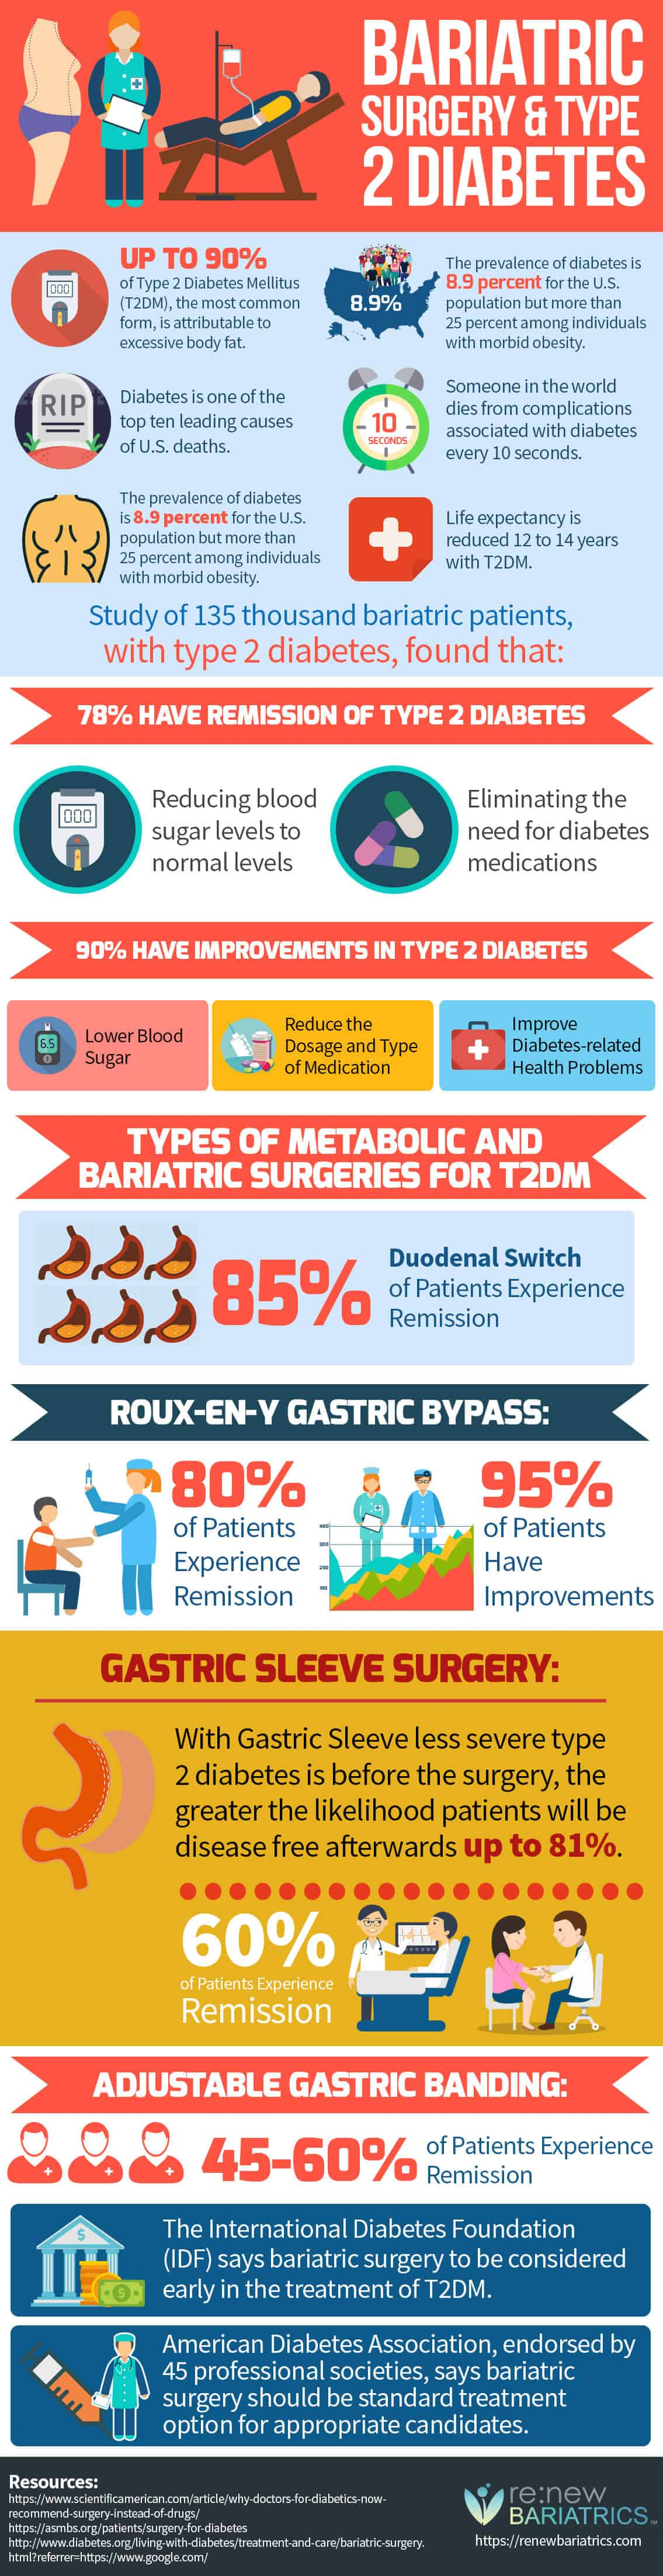 Type 2 Diabetes and Bariatric Surgery